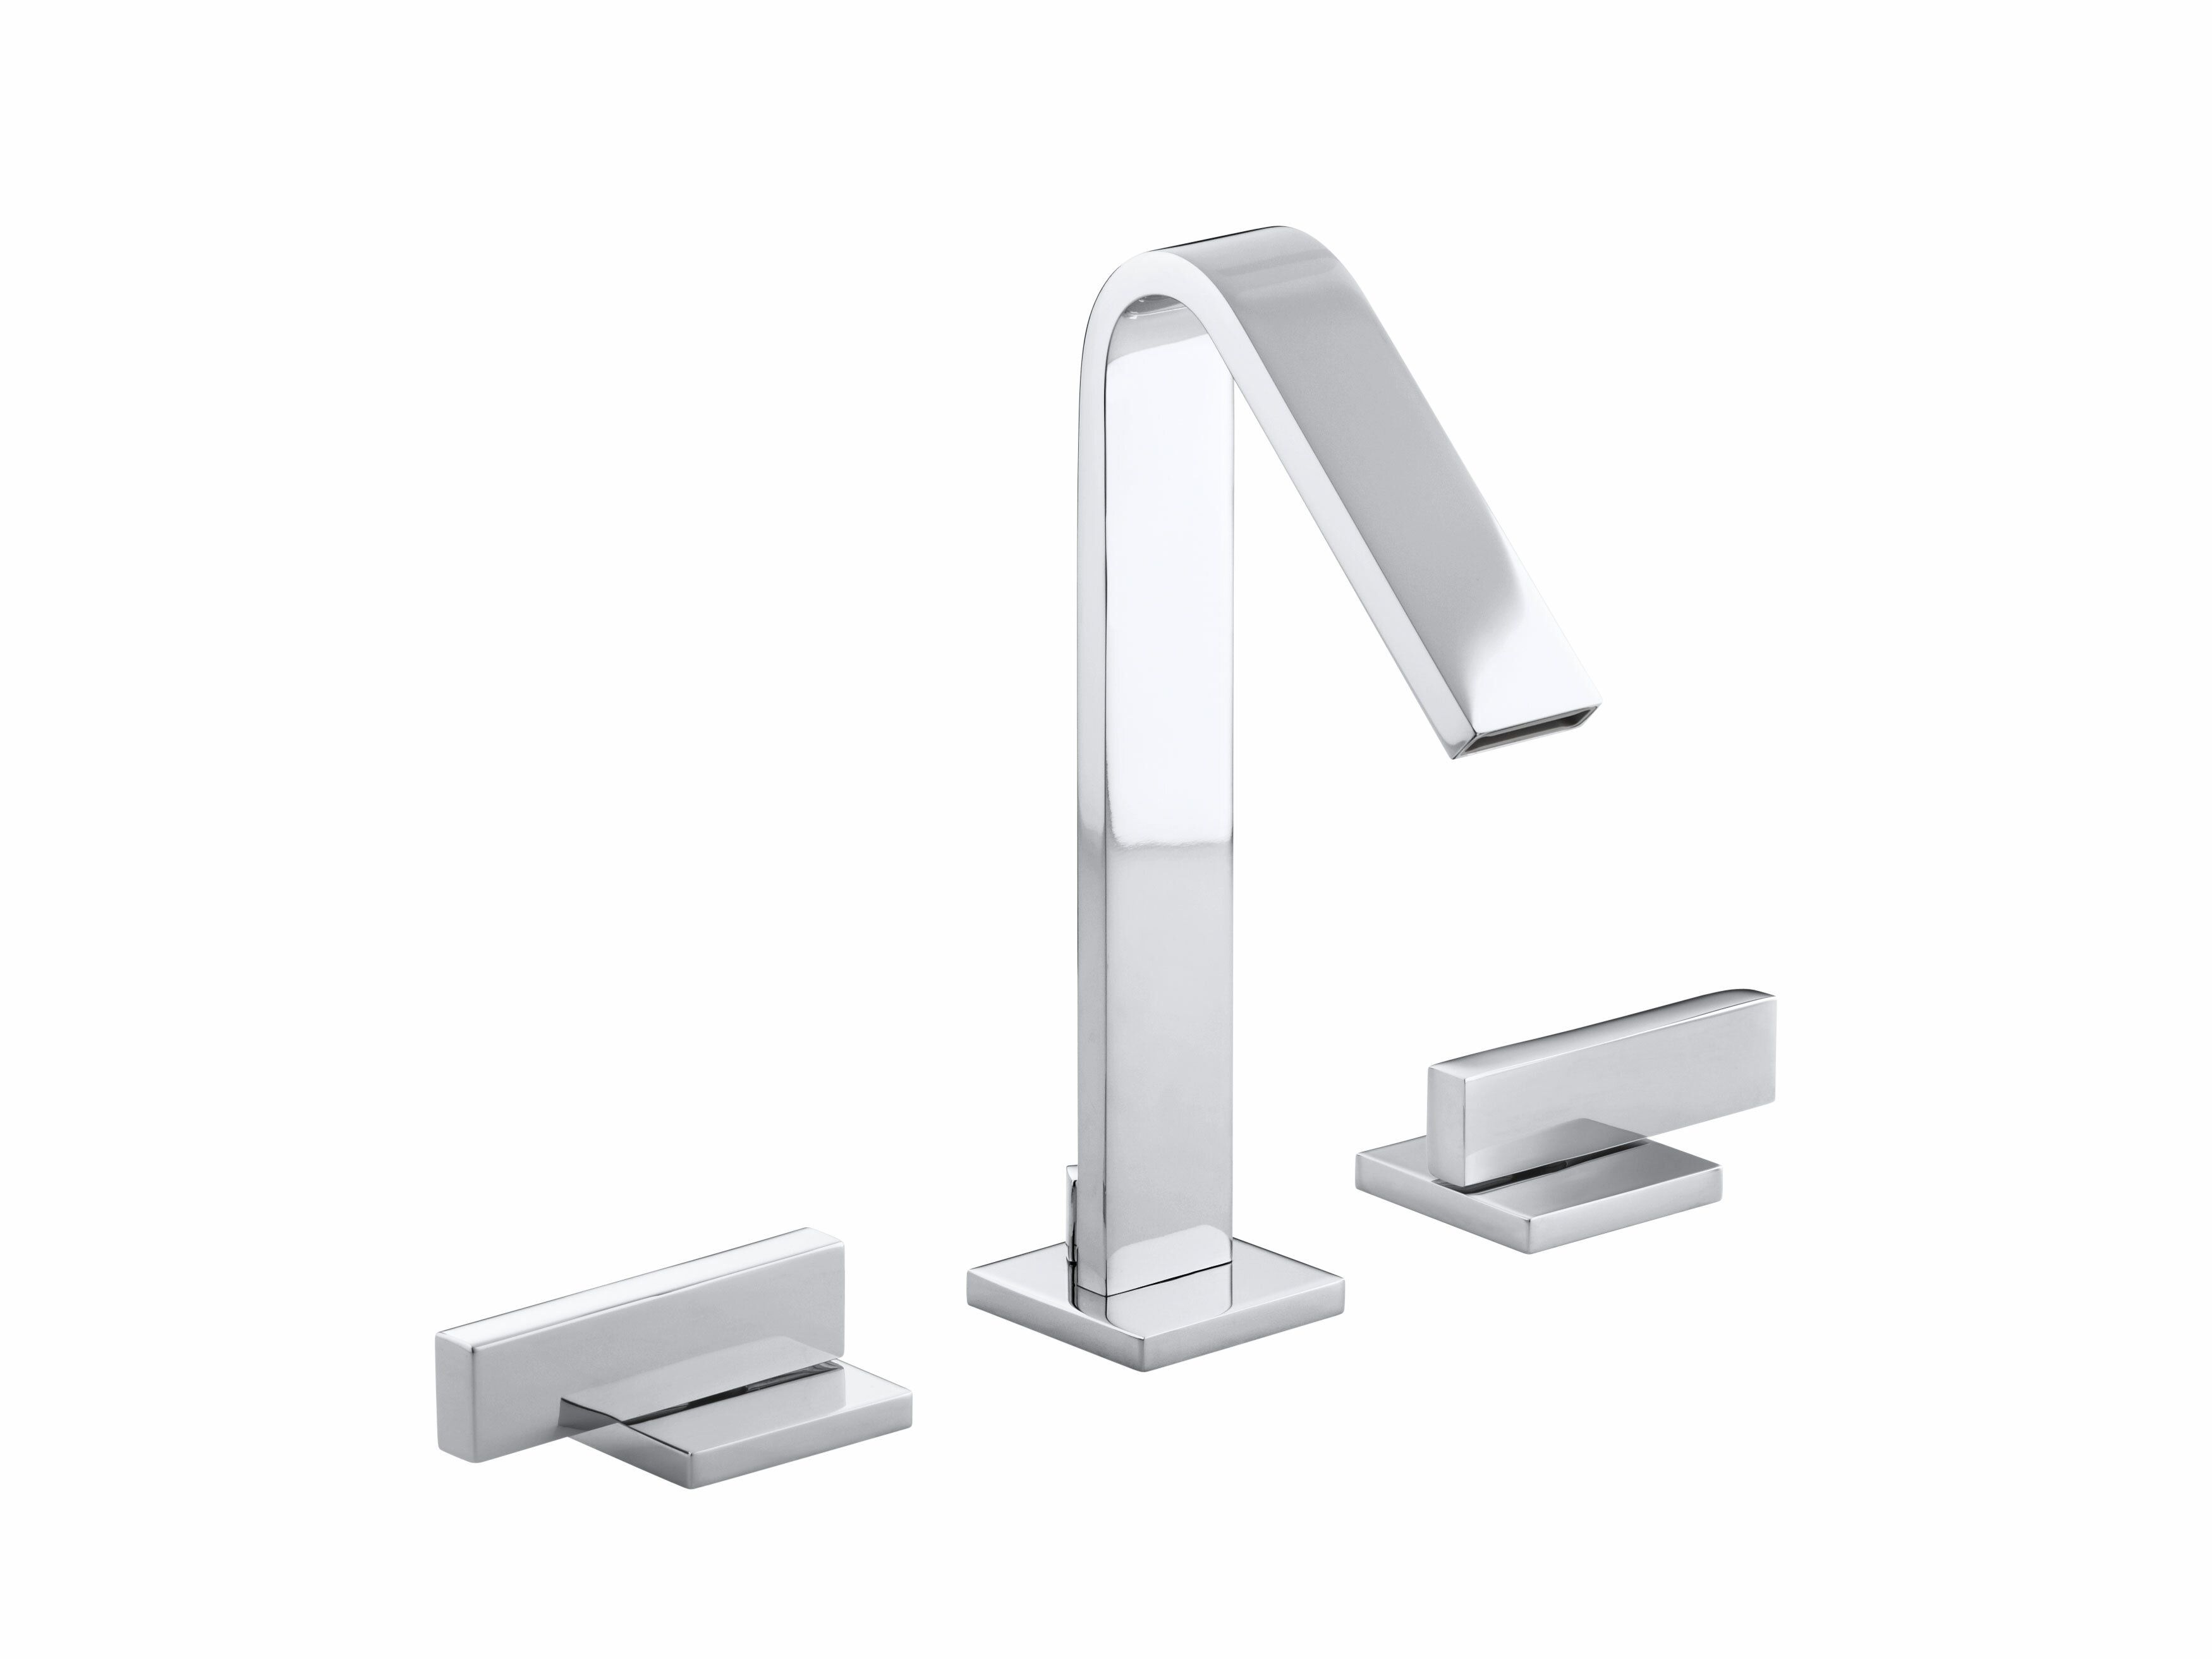 index ch kes hole lead sink chrome free polished faucet bathroom brass single vanity handle lavatory